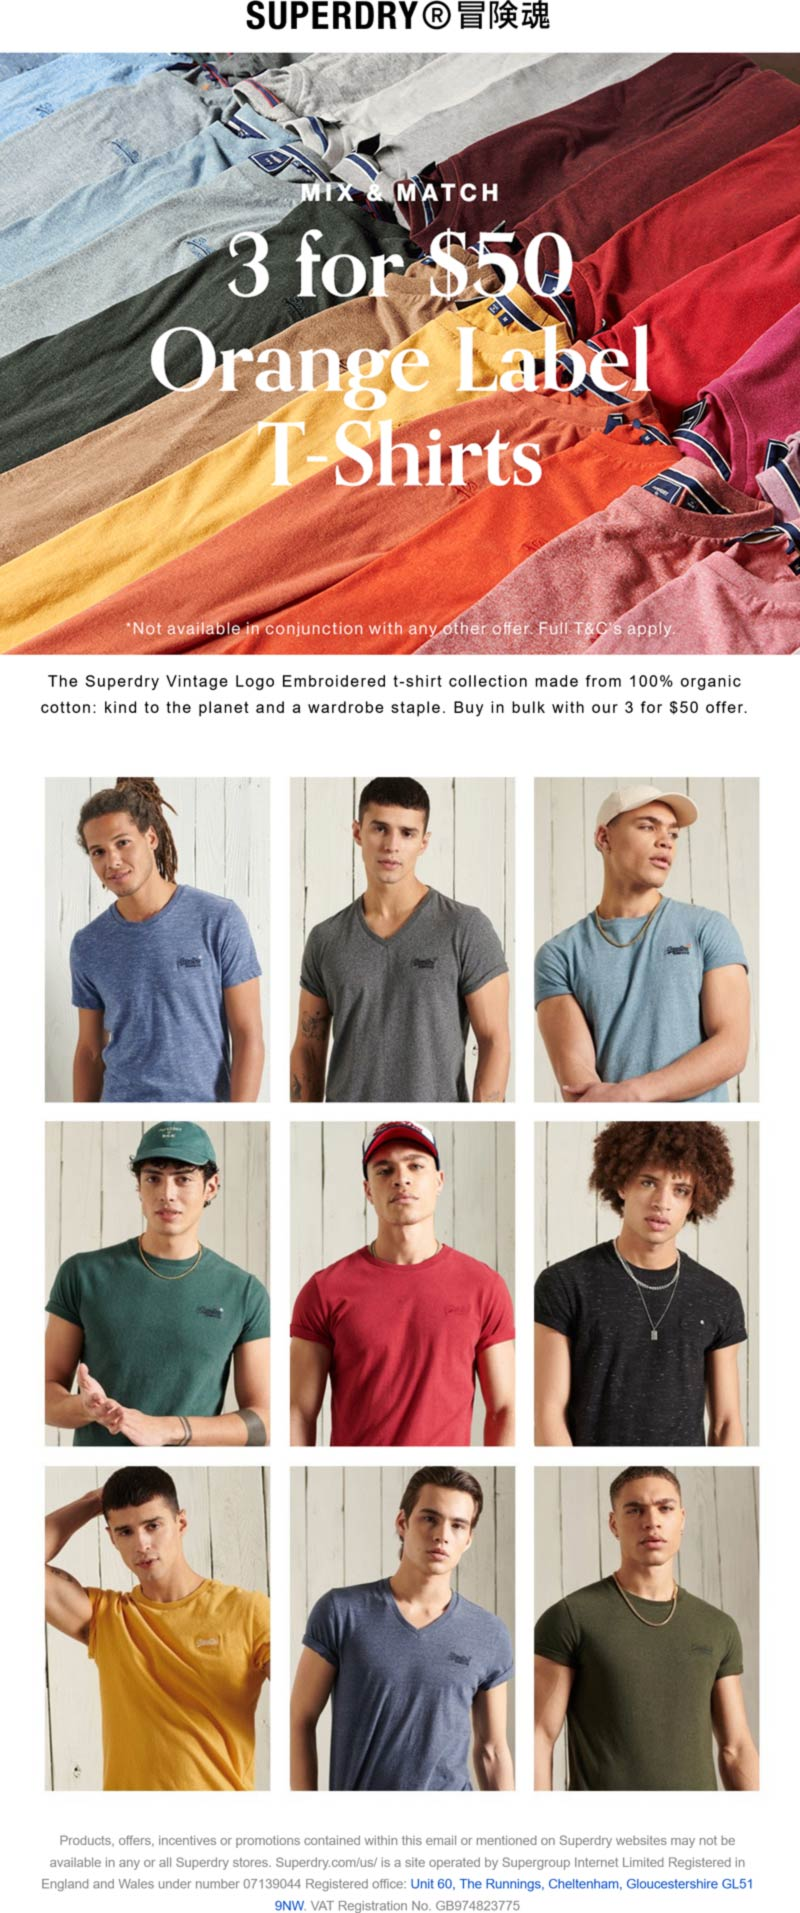 Superdry stores Coupon  Mix & match t-shirts 3 for $50 at Superdry #superdry